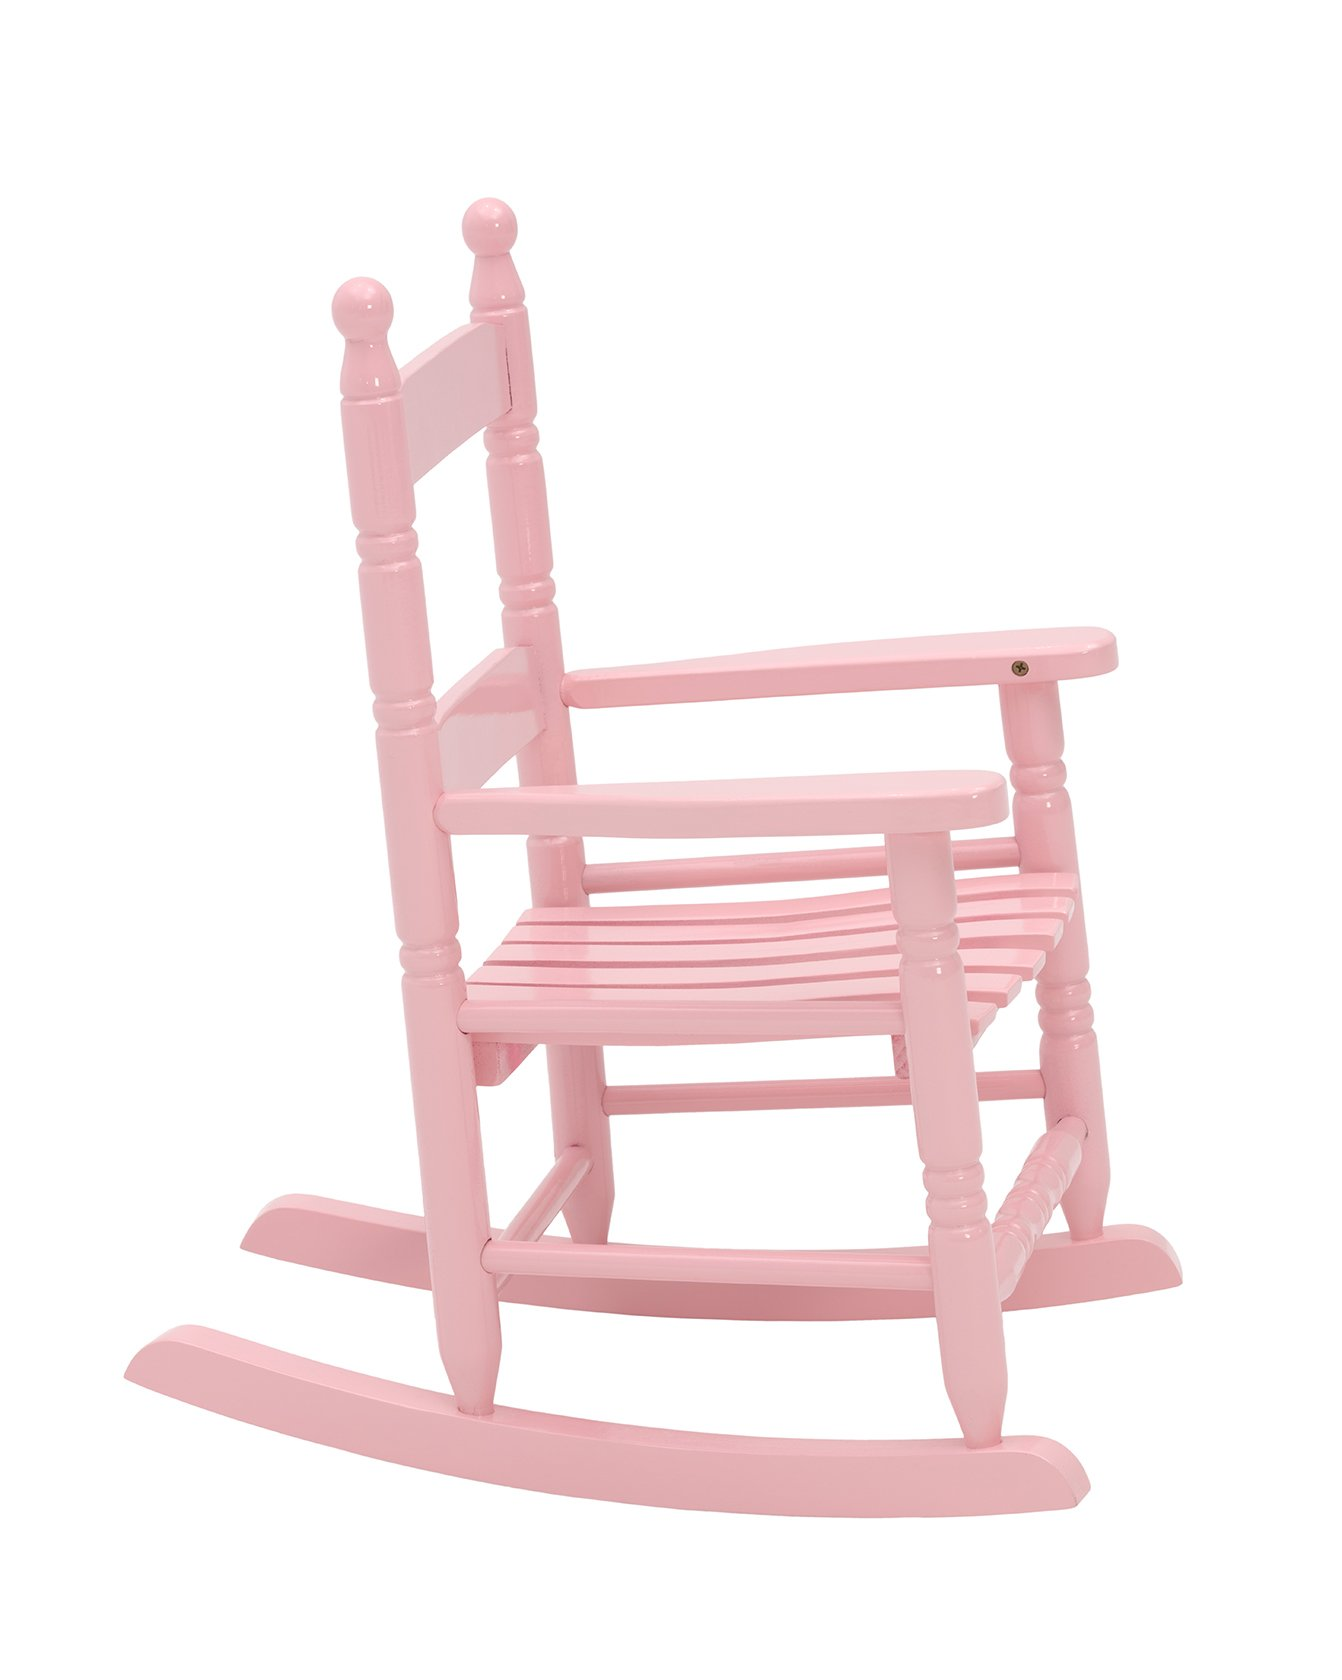 Jack Post KN-10P Knollwood Classic Child's Porch Rocker, Pink by Jack Post (Image #3)